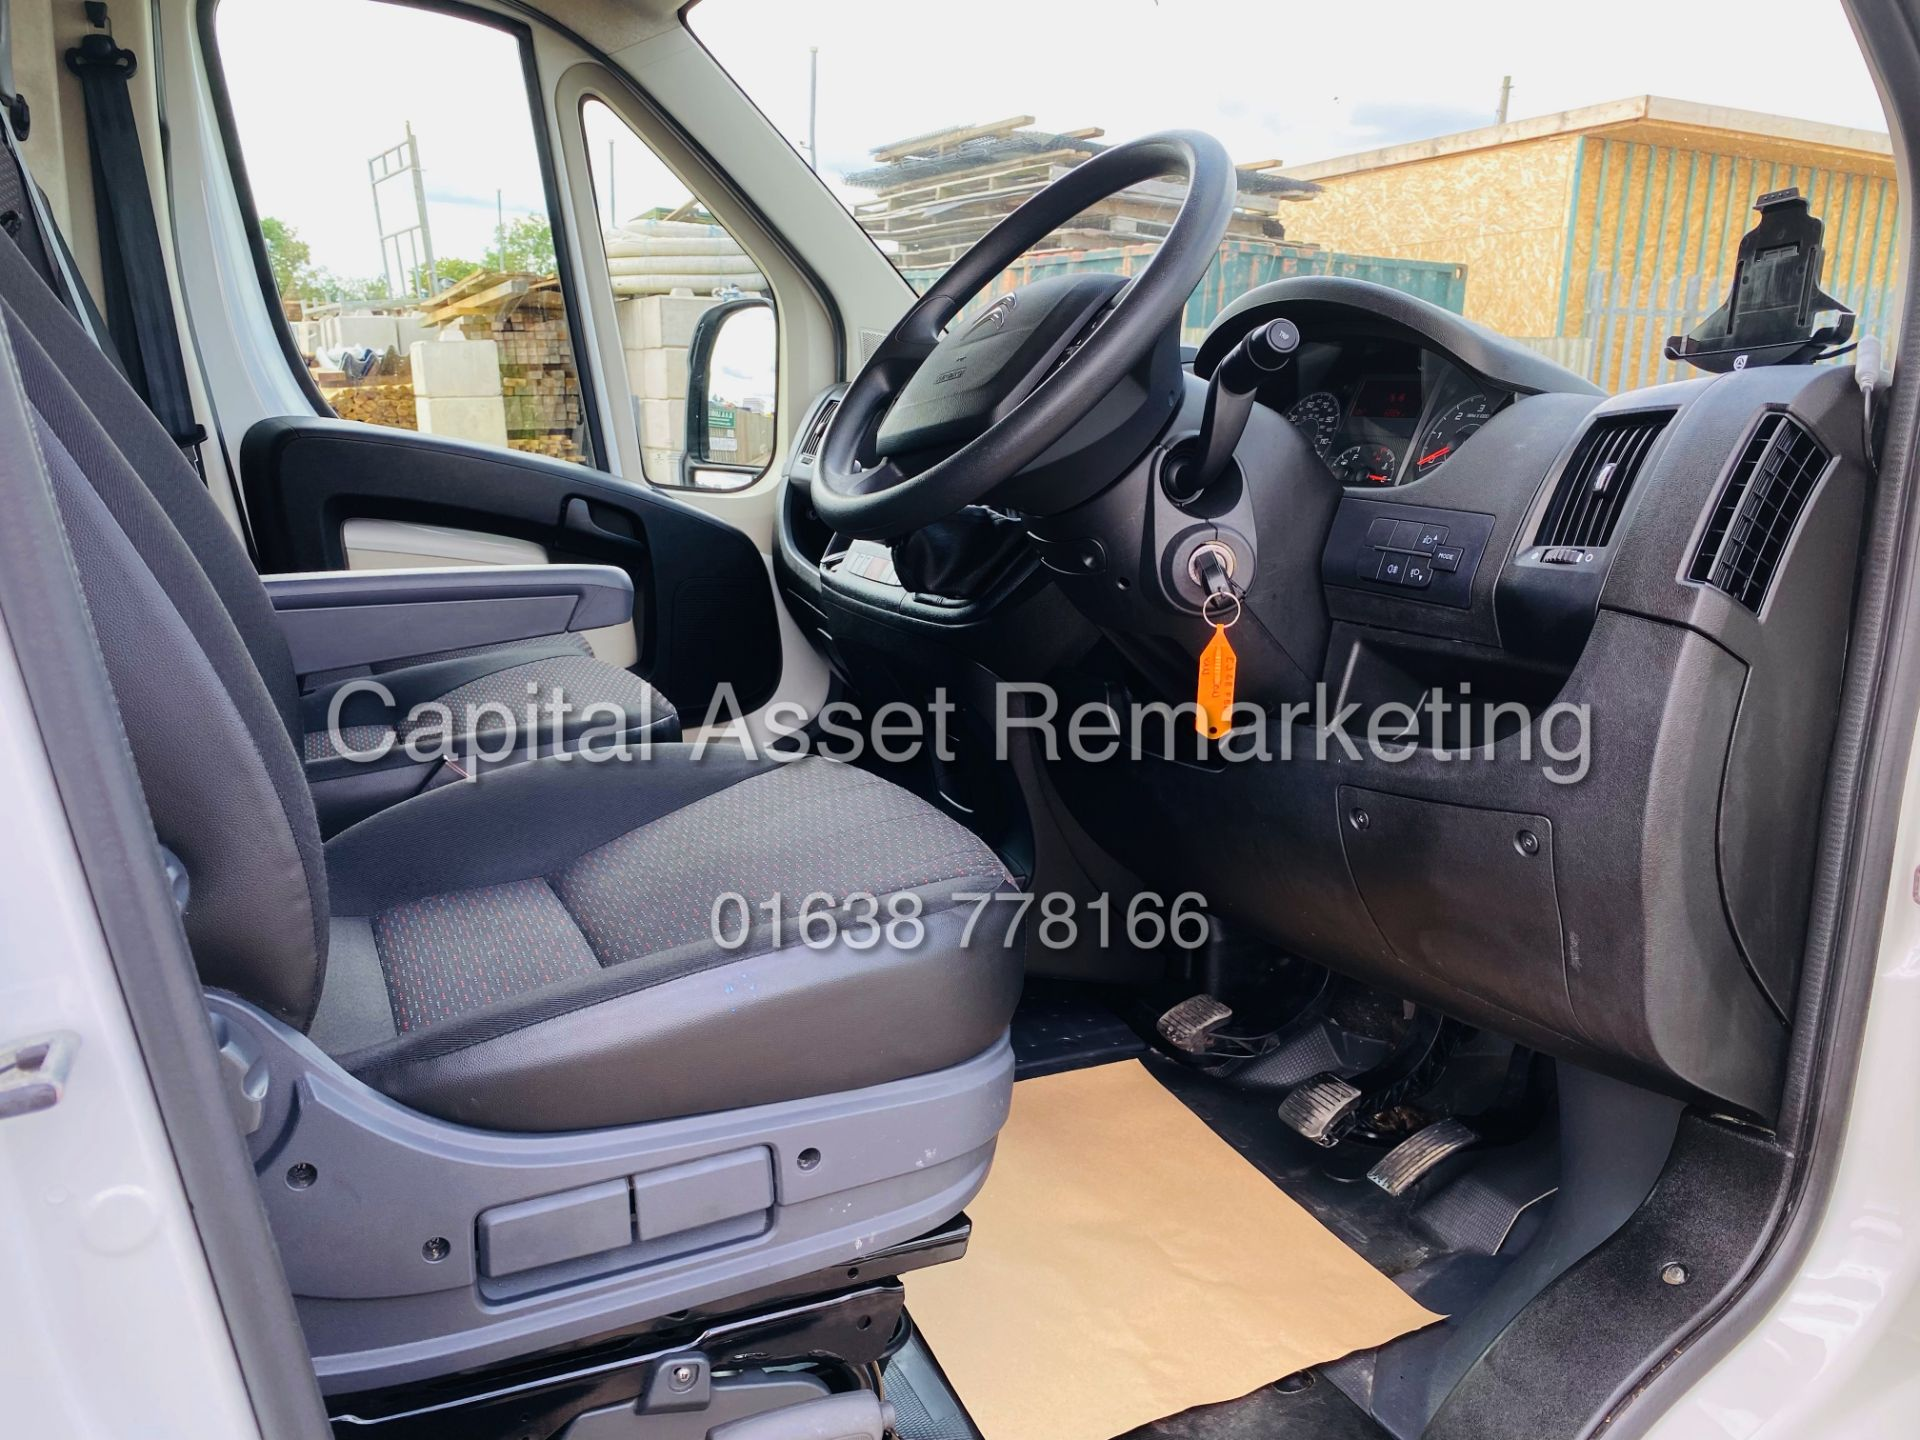 """ON SALE CITROEN RELAY 2.0 BLUE-HDI """"ENTERPRISE"""" L1H1 (2019 MODEL) AIR CON 6882 MILES ON THE CLOCK - Image 14 of 28"""